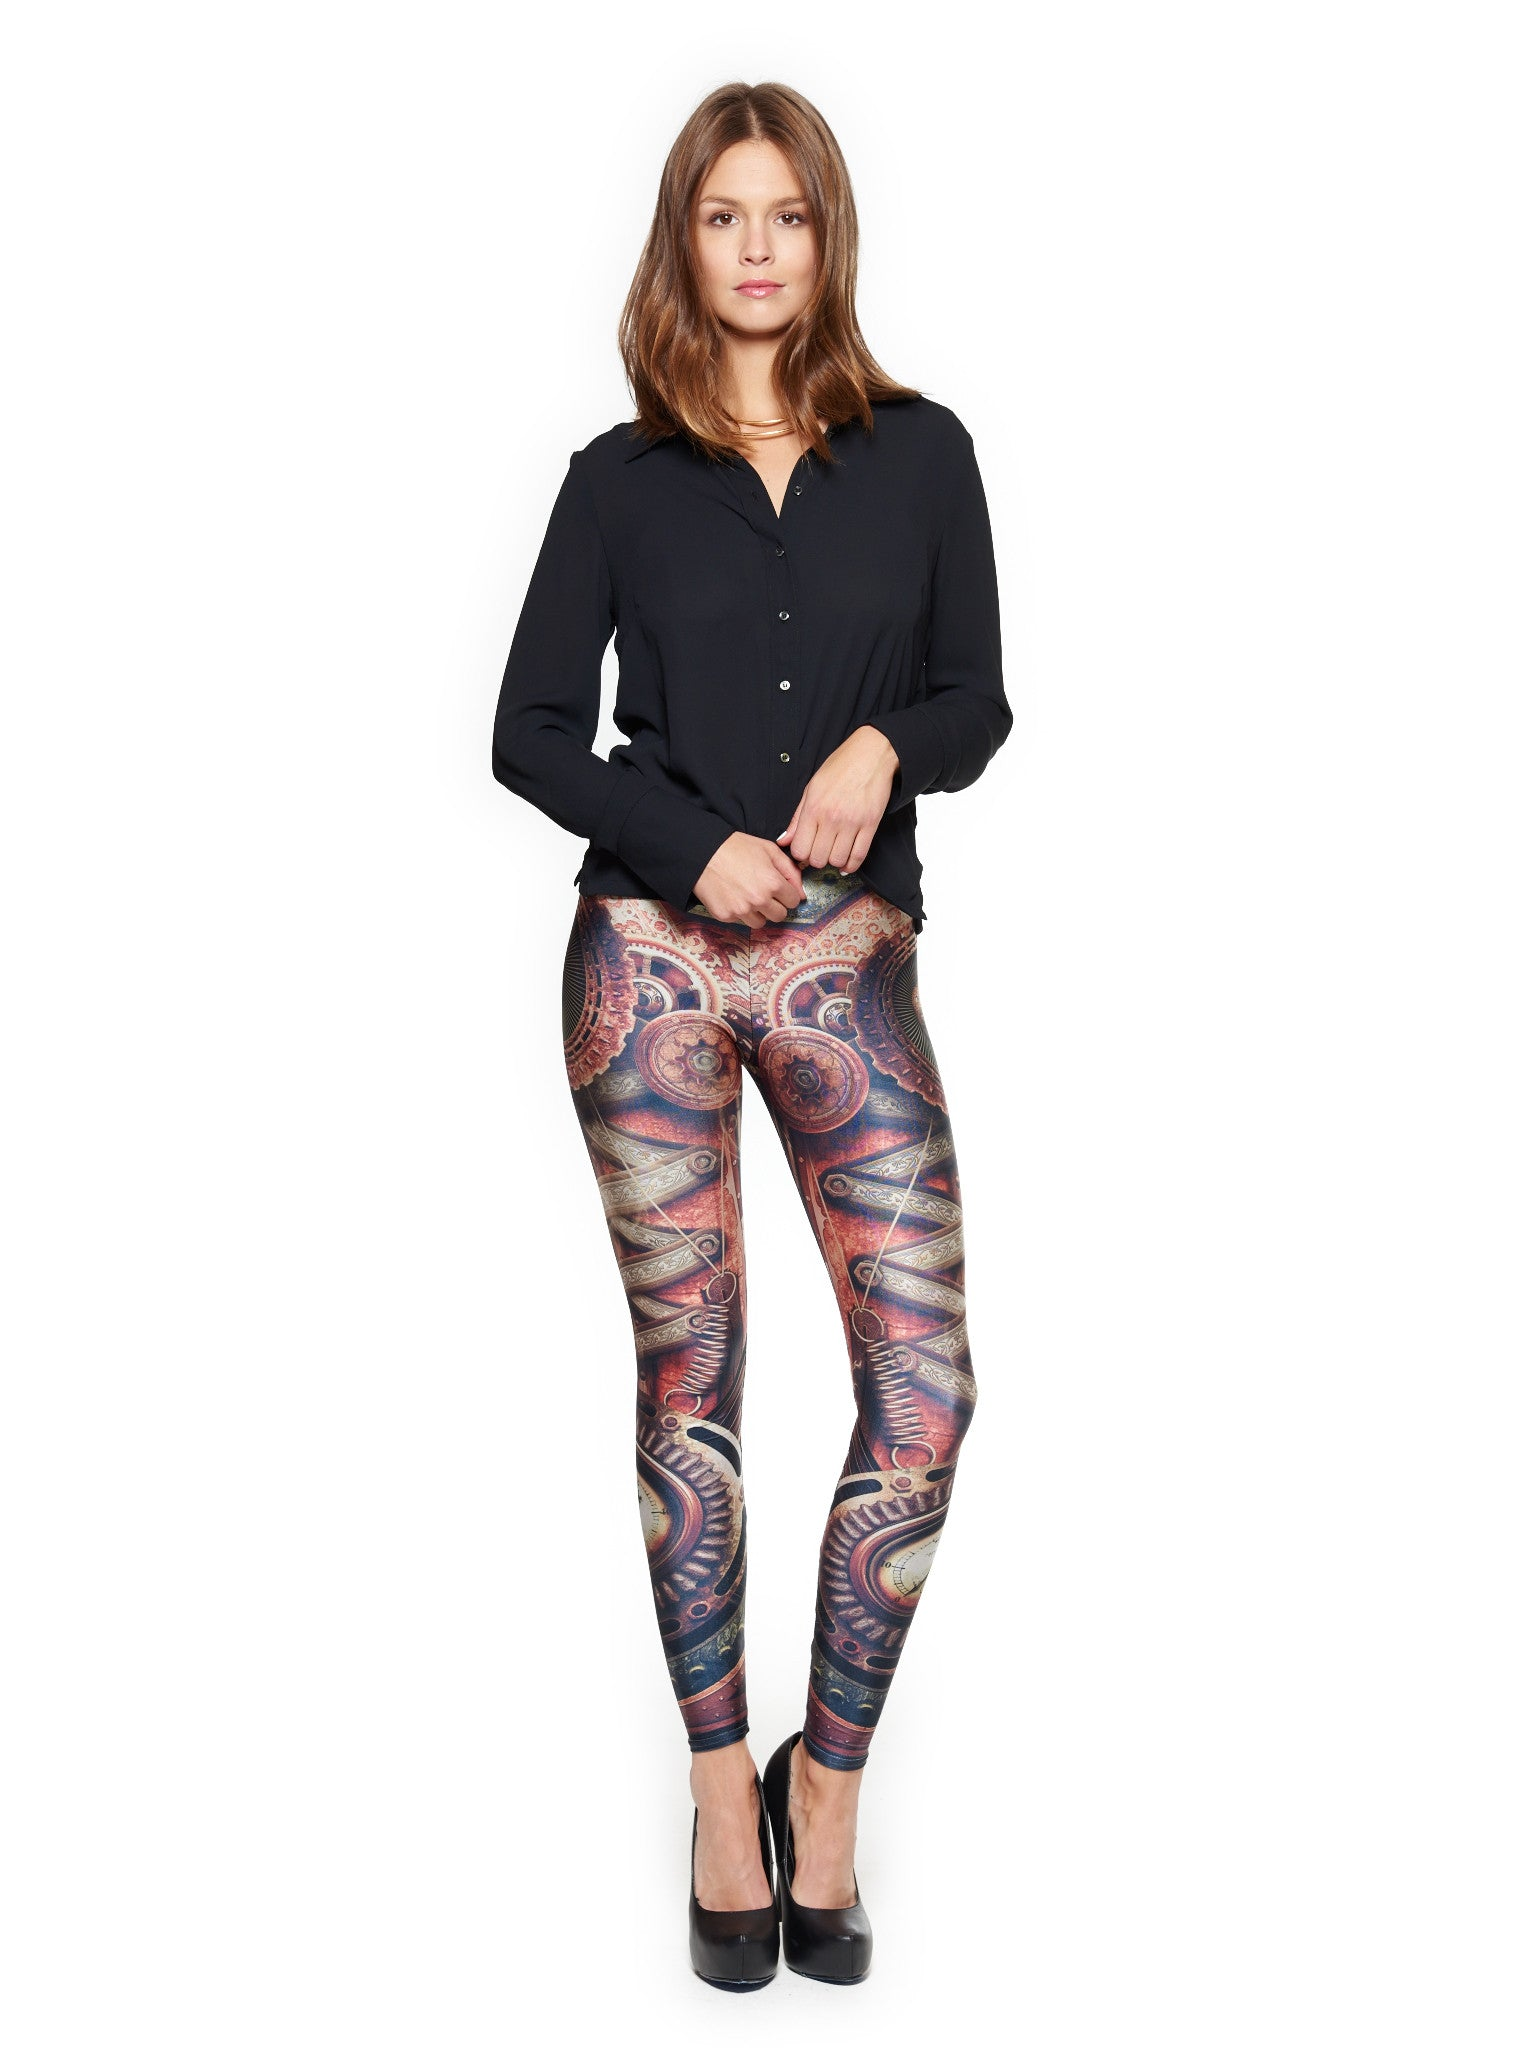 Steampunk Motherboard Queen West Leggings - Nuvango Gallery & Goods - 1